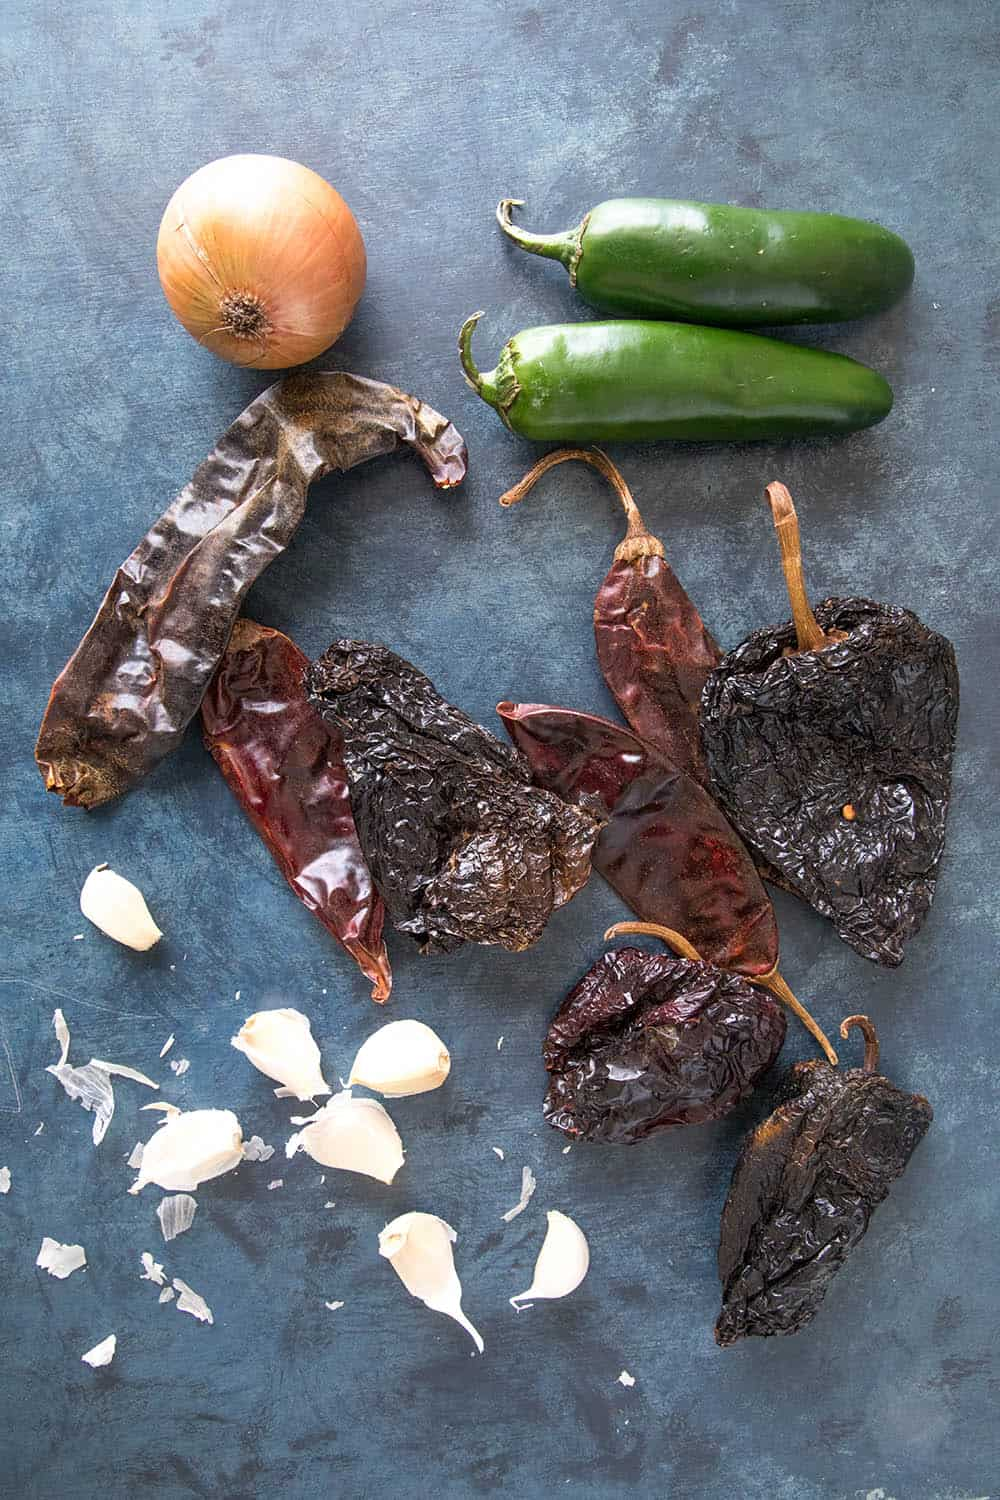 Dried peppers, jalapenos, onion and garlic, essential for making Chili Con Carne